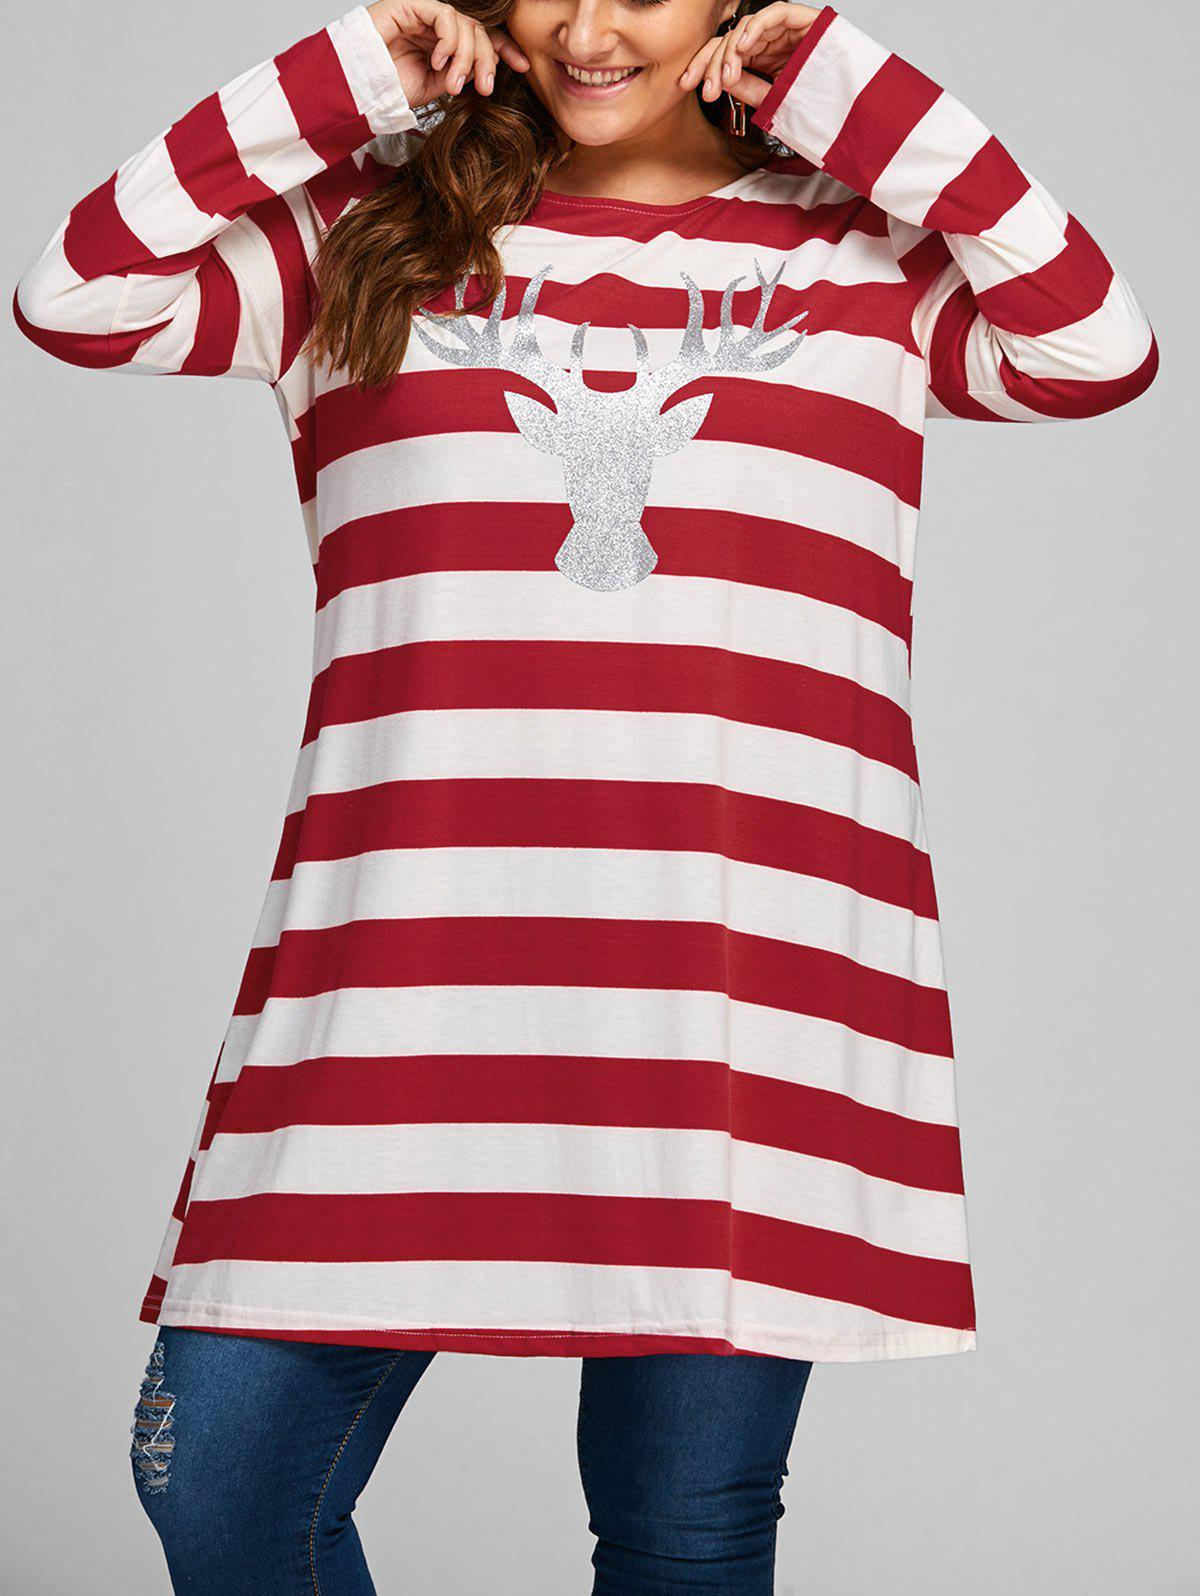 Plus Size Striped Christmas Elk Longline T-shirtWOMEN<br><br>Size: 3XL; Color: RED; Material: Cotton,Polyester; Shirt Length: Long; Sleeve Length: Full; Collar: Round Neck; Style: Fashion; Season: Fall; Pattern Type: Animal,Striped; Weight: 0.3500kg; Package Contents: 1 x T-shirt;